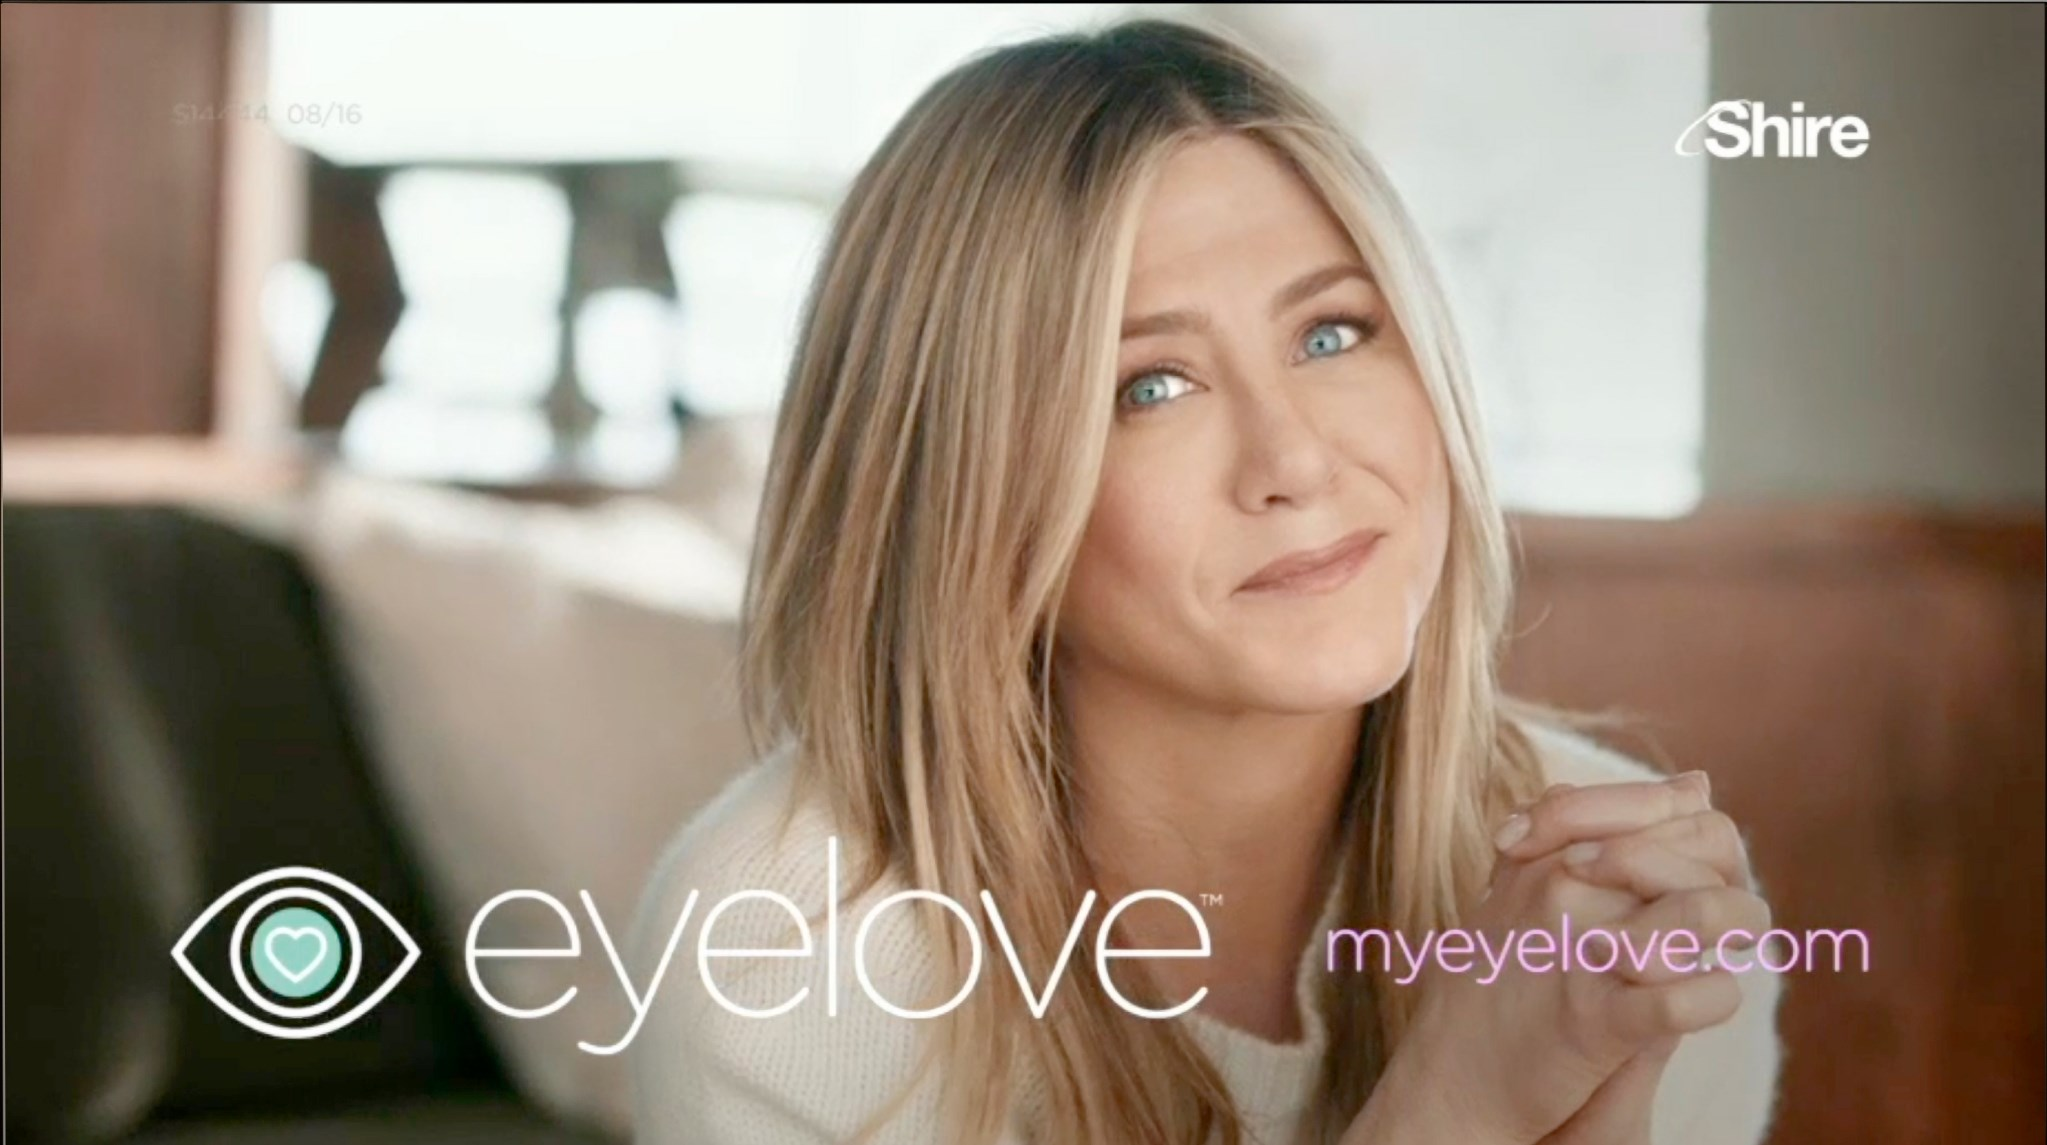 Shire taps Jennifer Aniston for awareness campaign as it enters the eye care market